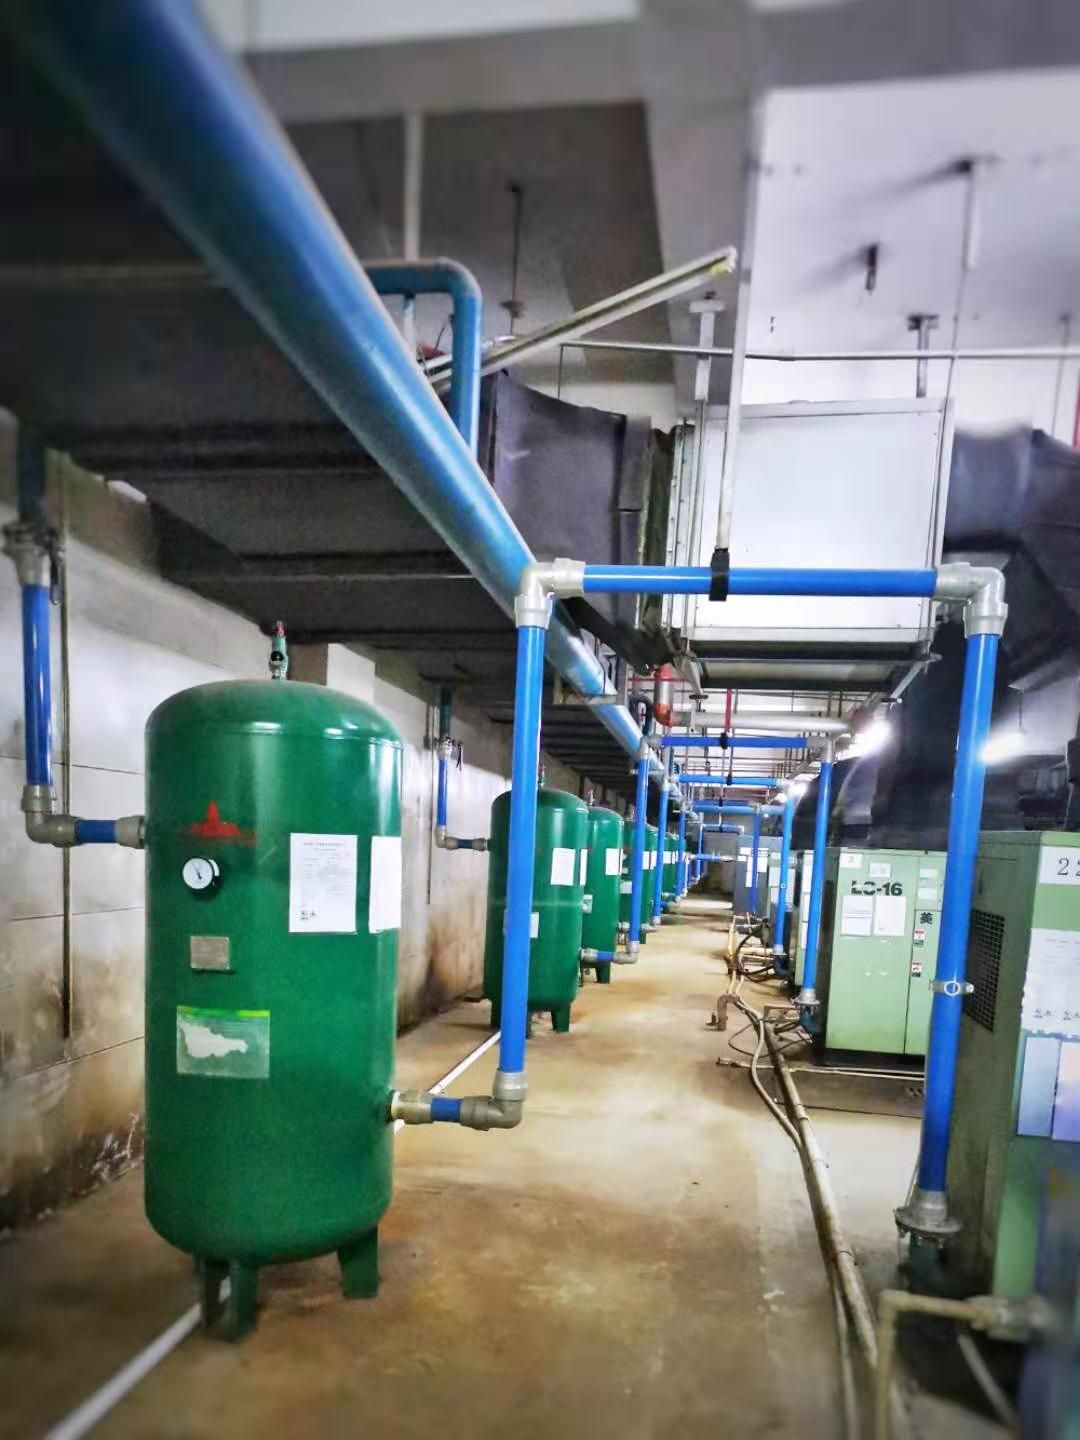 FSTpipe beautiful compressed air piping system in the